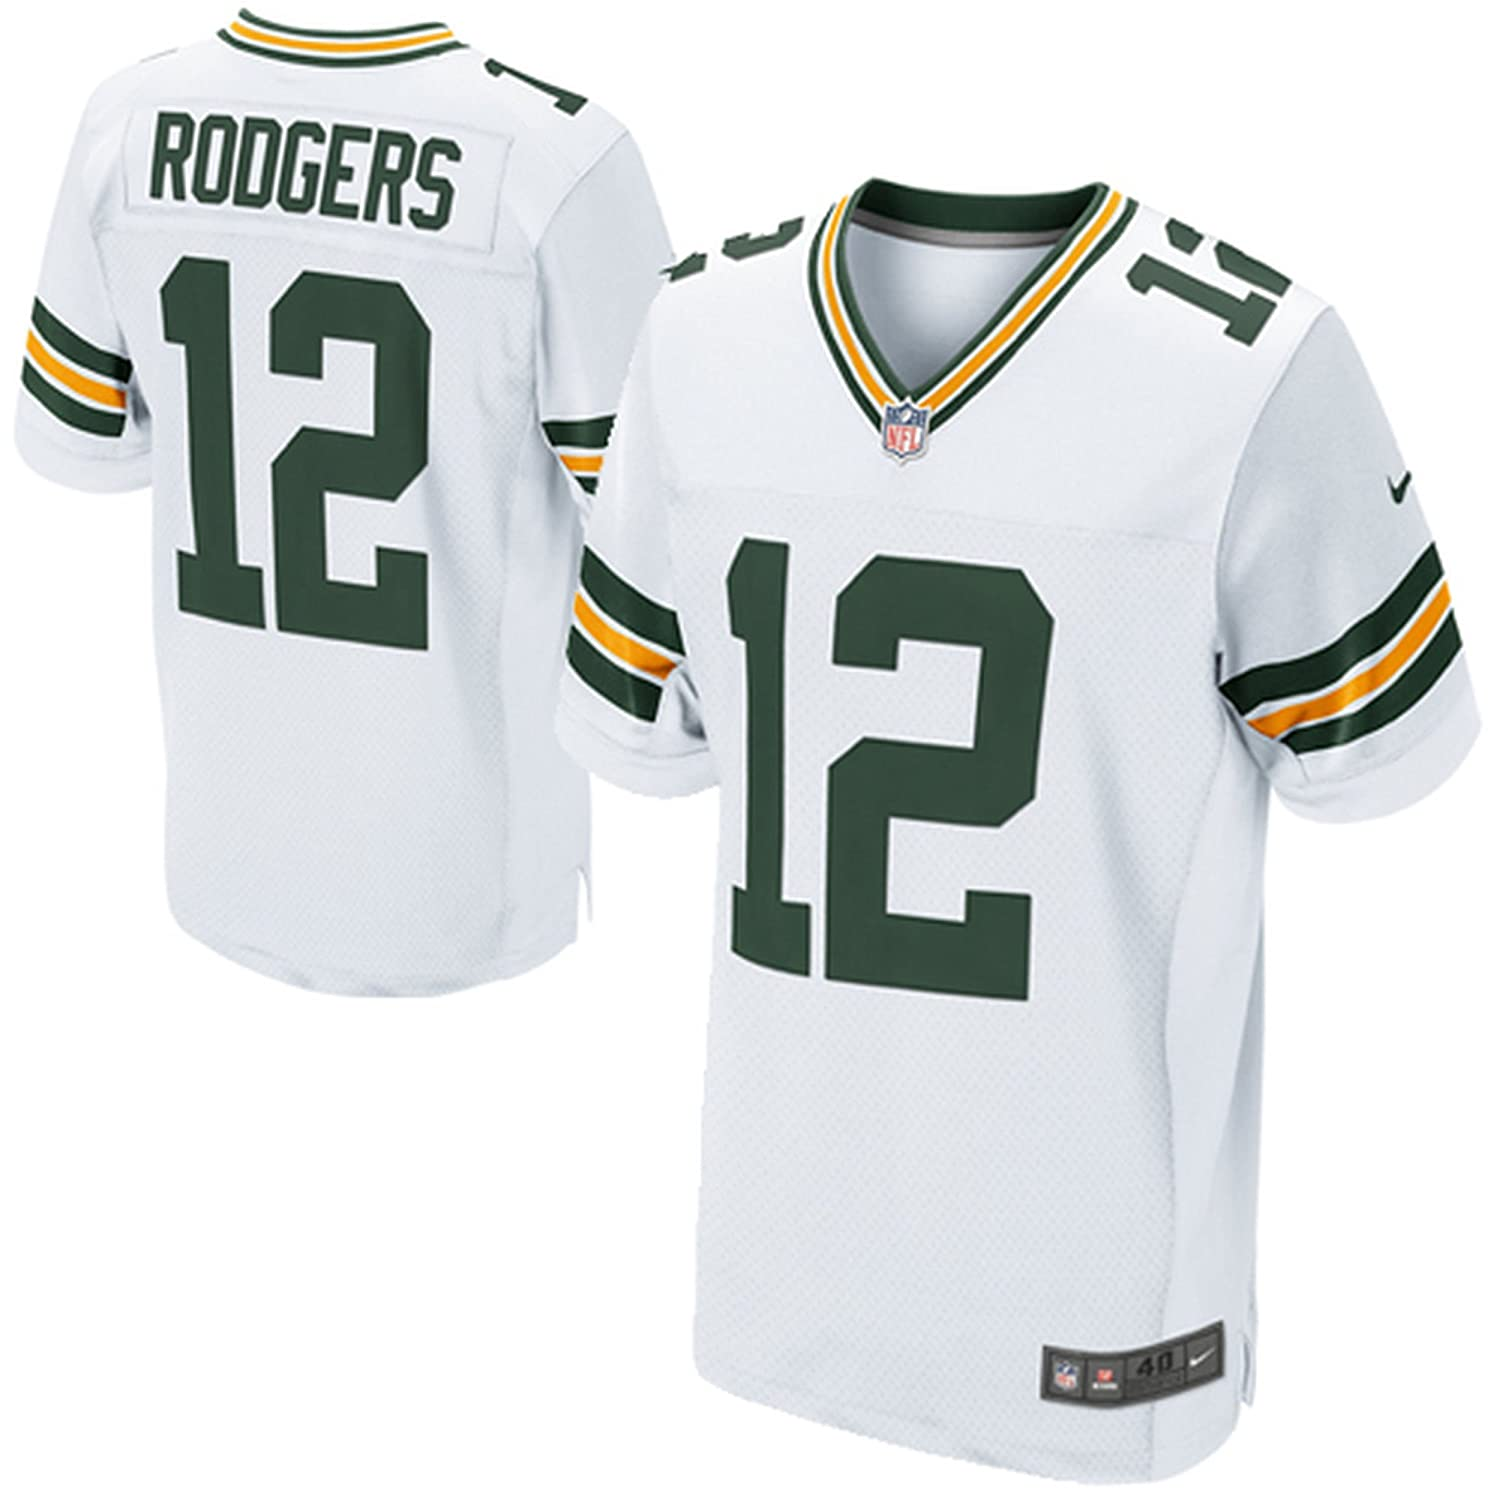 new concept 3388d 46b6b Amazon.com : Nike Aaron Rodgers Green Bay Packers White ...